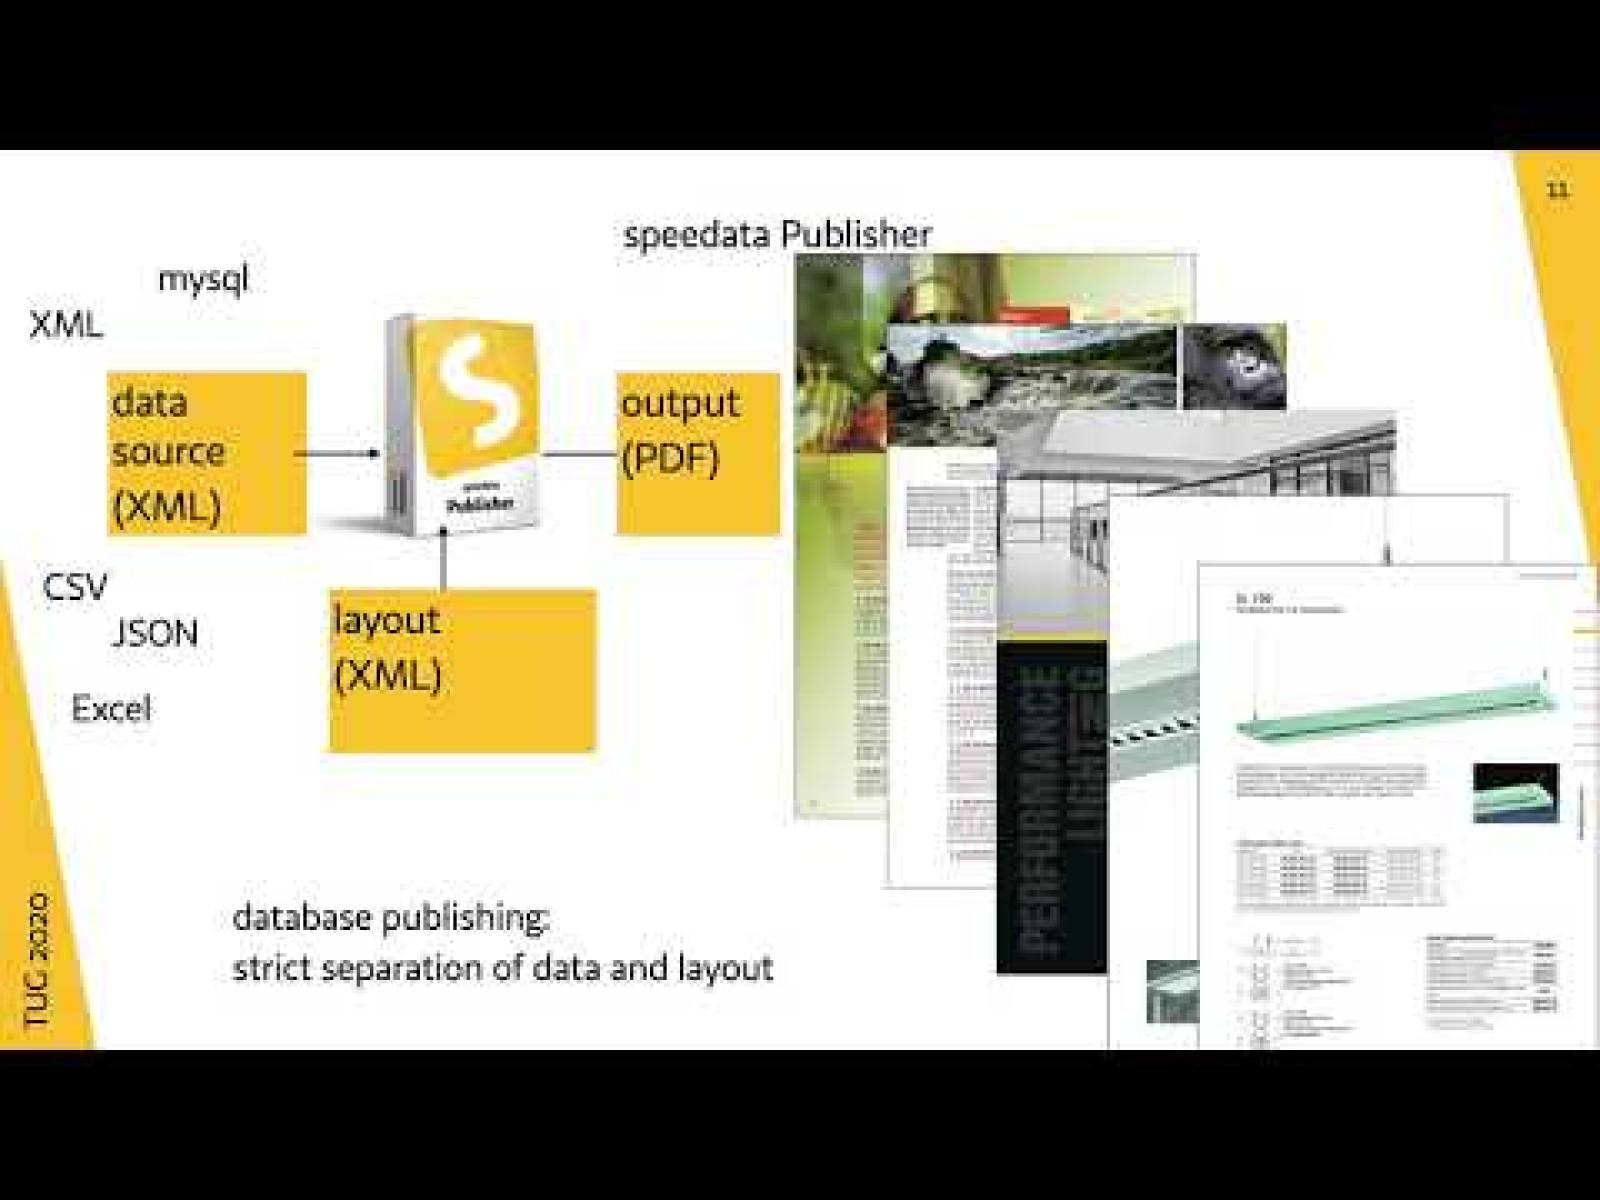 speedata Publisher - database publishing